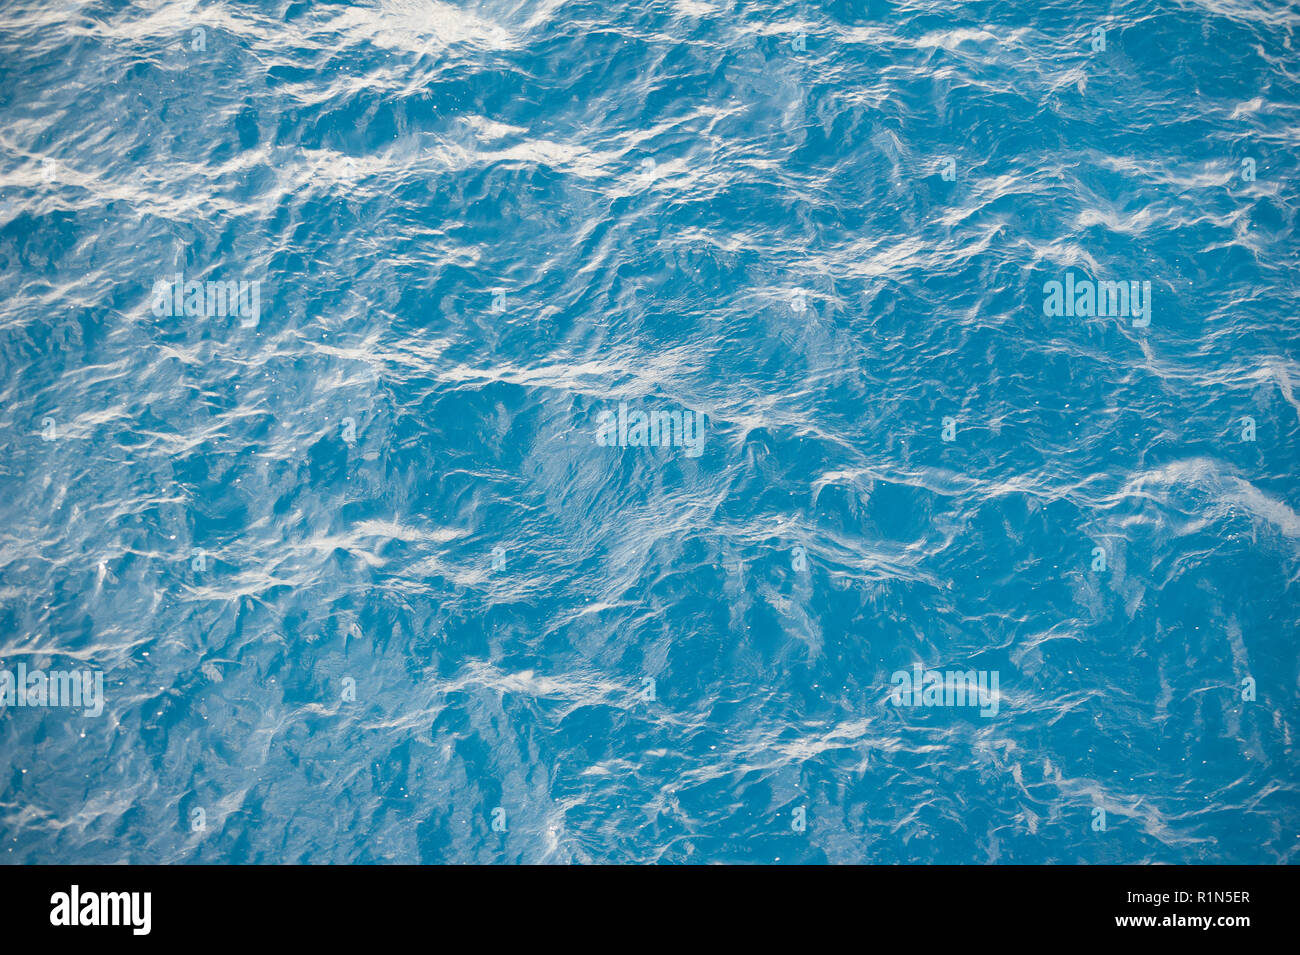 High angle blue ripple water background texture. Mediterranean sea waves on bright sunny day. - Stock Image